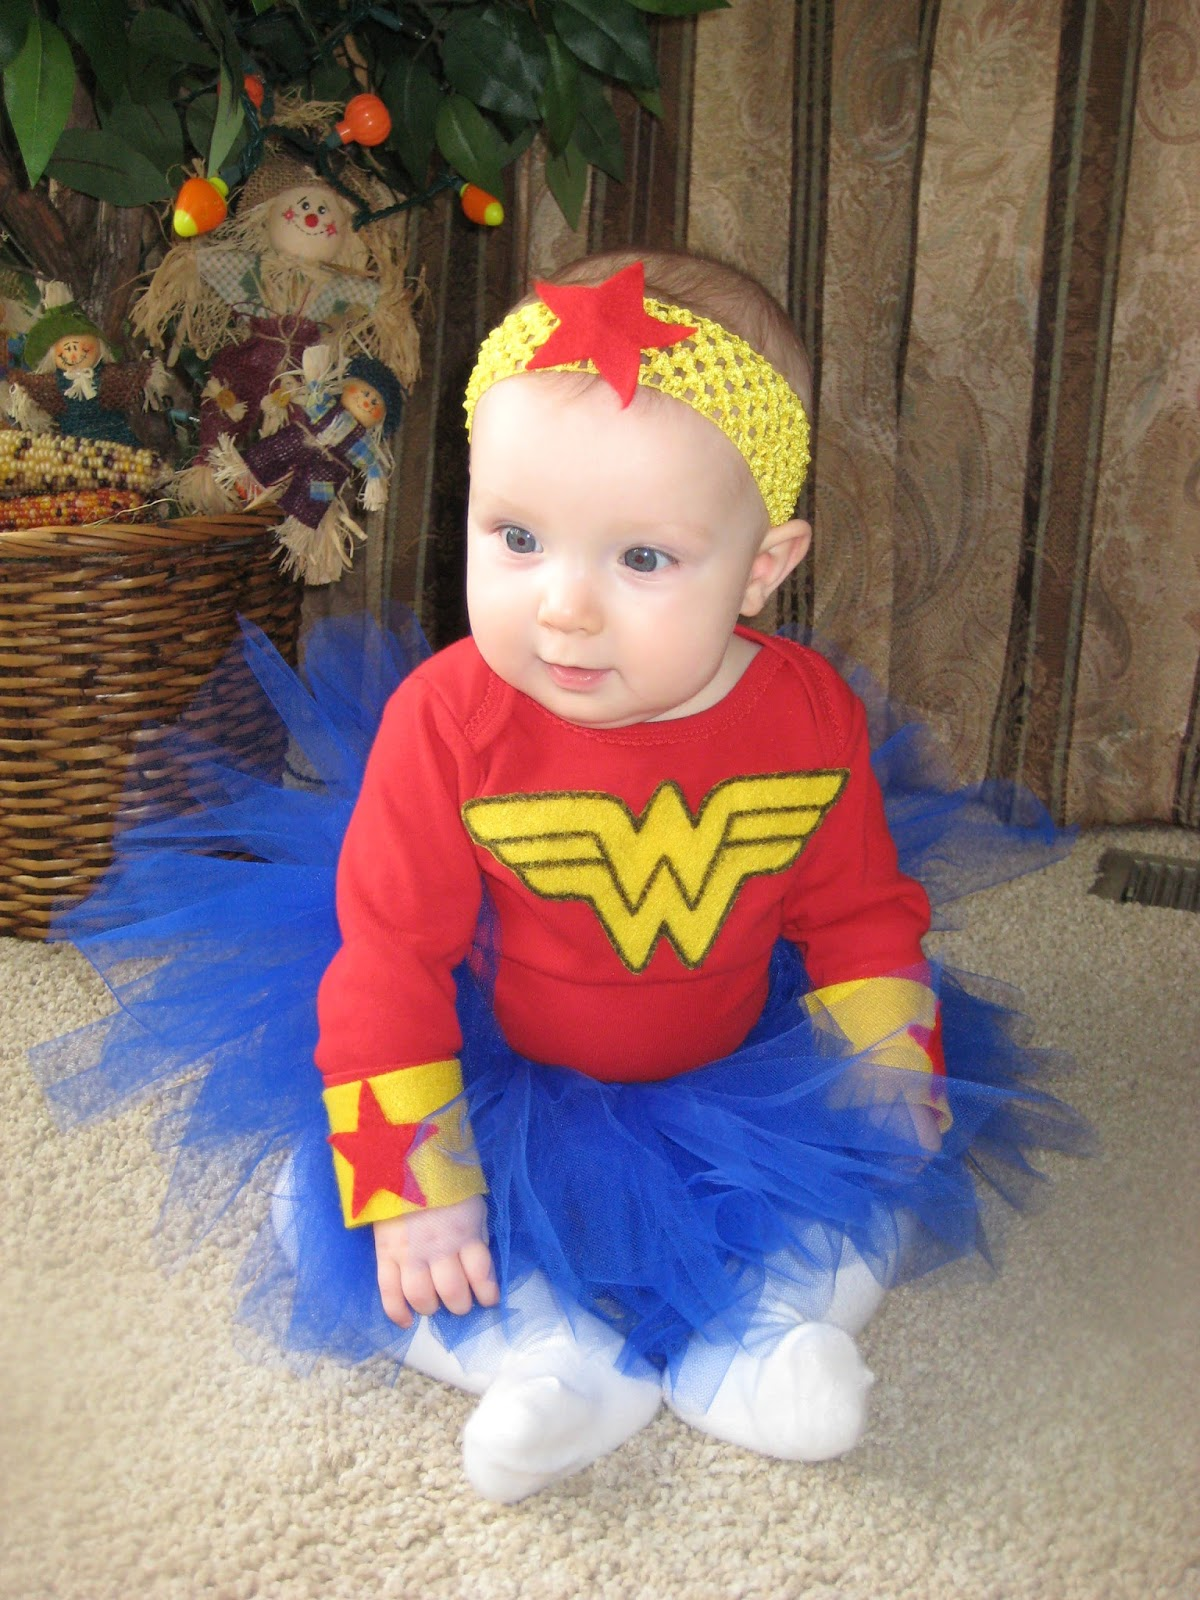 Sweet little ones diy halloween costume ideas for Homemade halloween costumes for kids